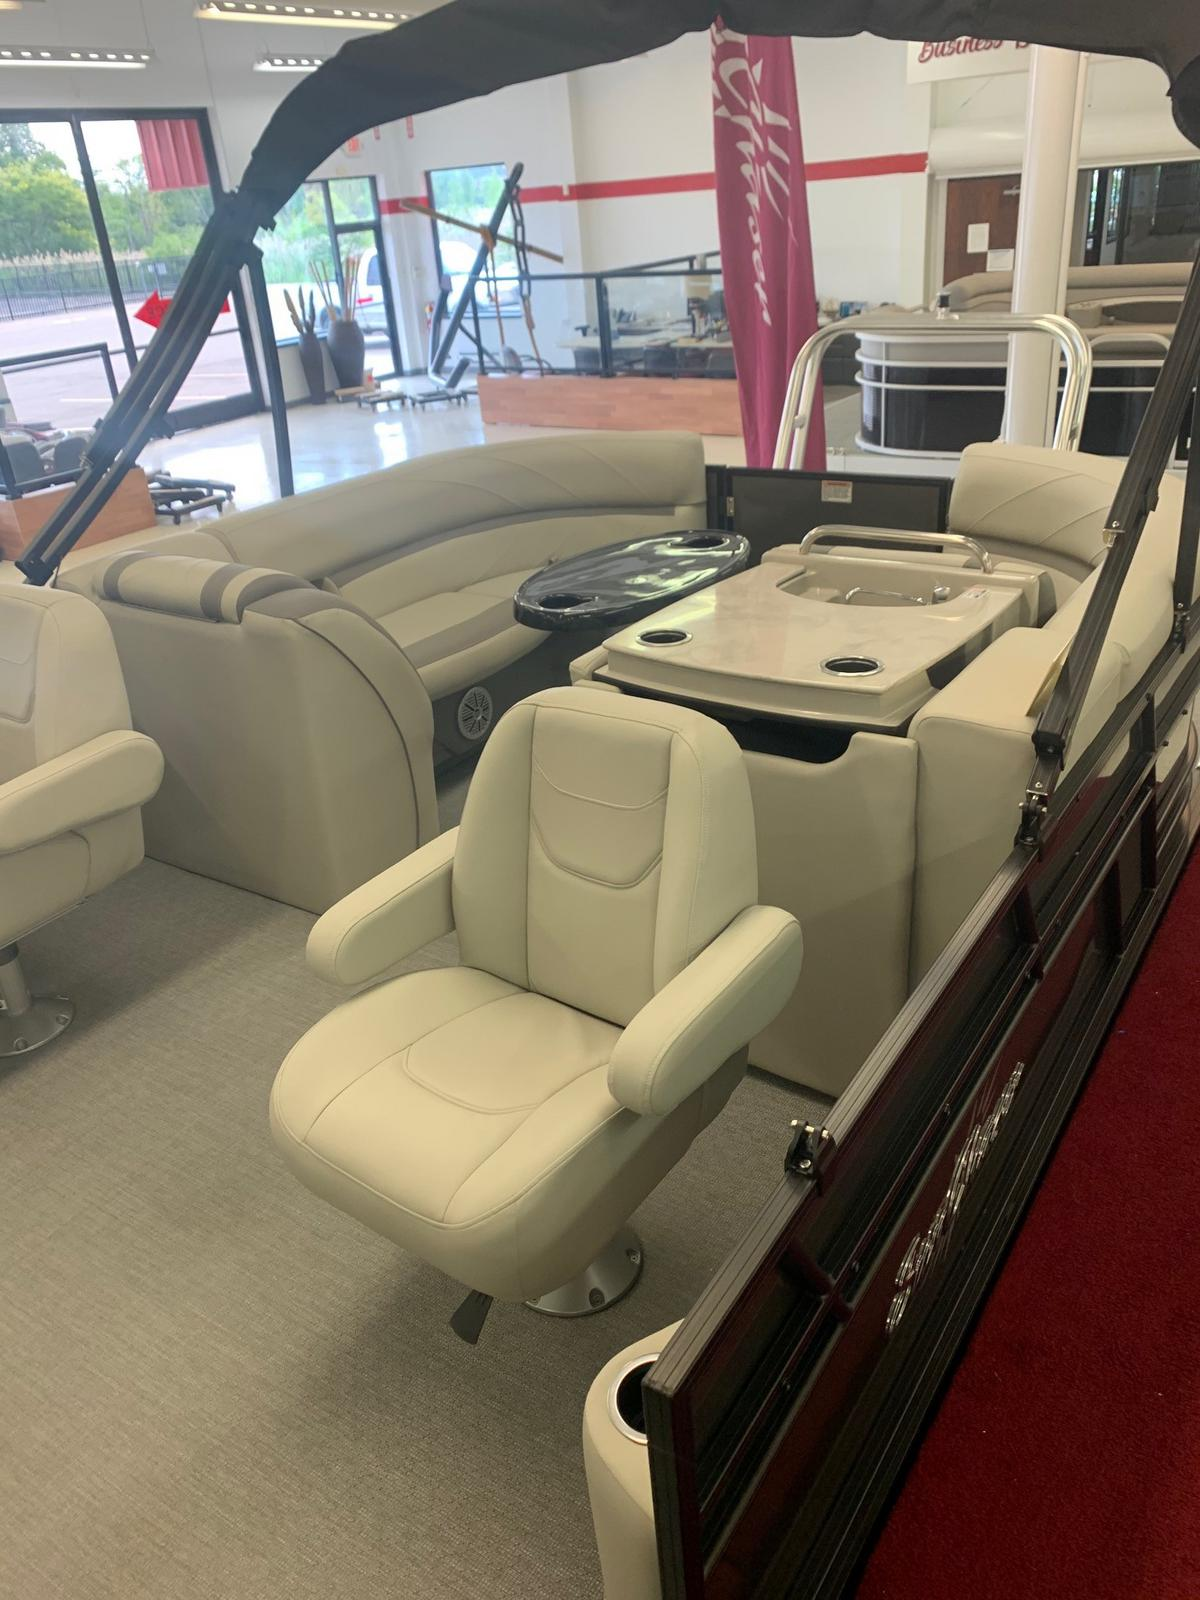 2020 SunChaser boat for sale, model of the boat is Geneva Cruise 22 LR DH & Image # 4 of 14